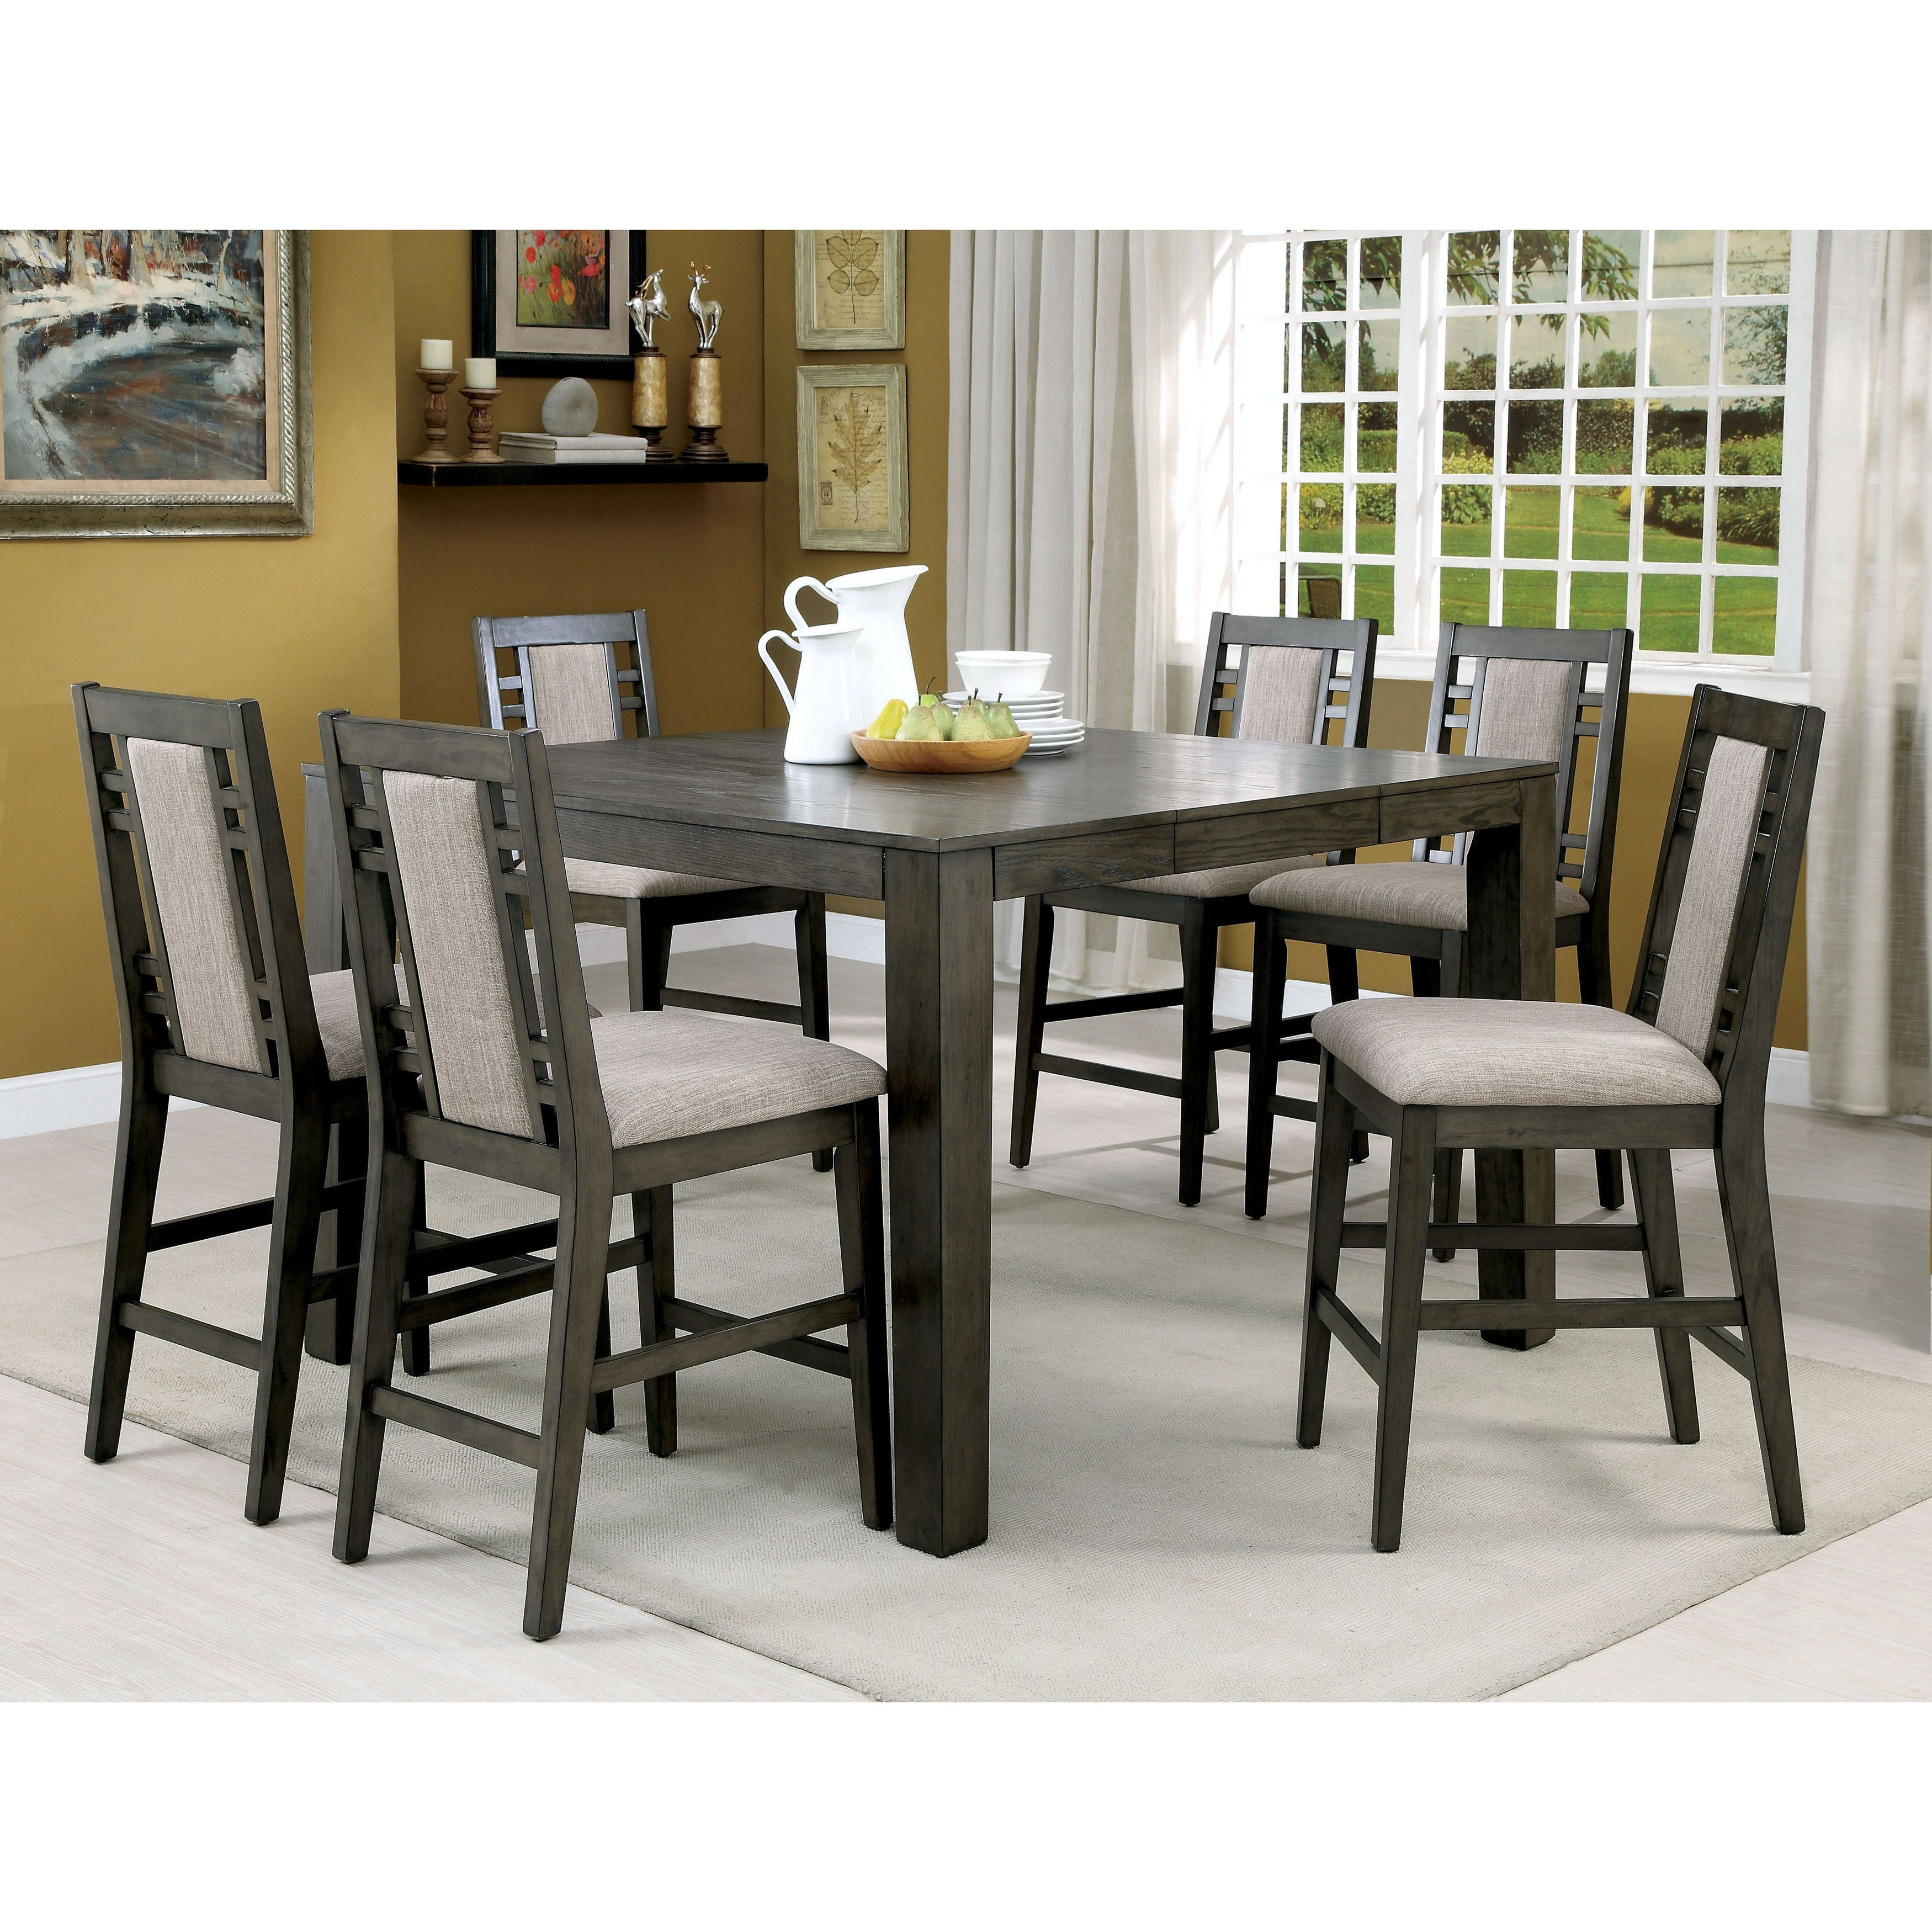 Furniture Of America Basson Rustic Expandable Counter Height Table